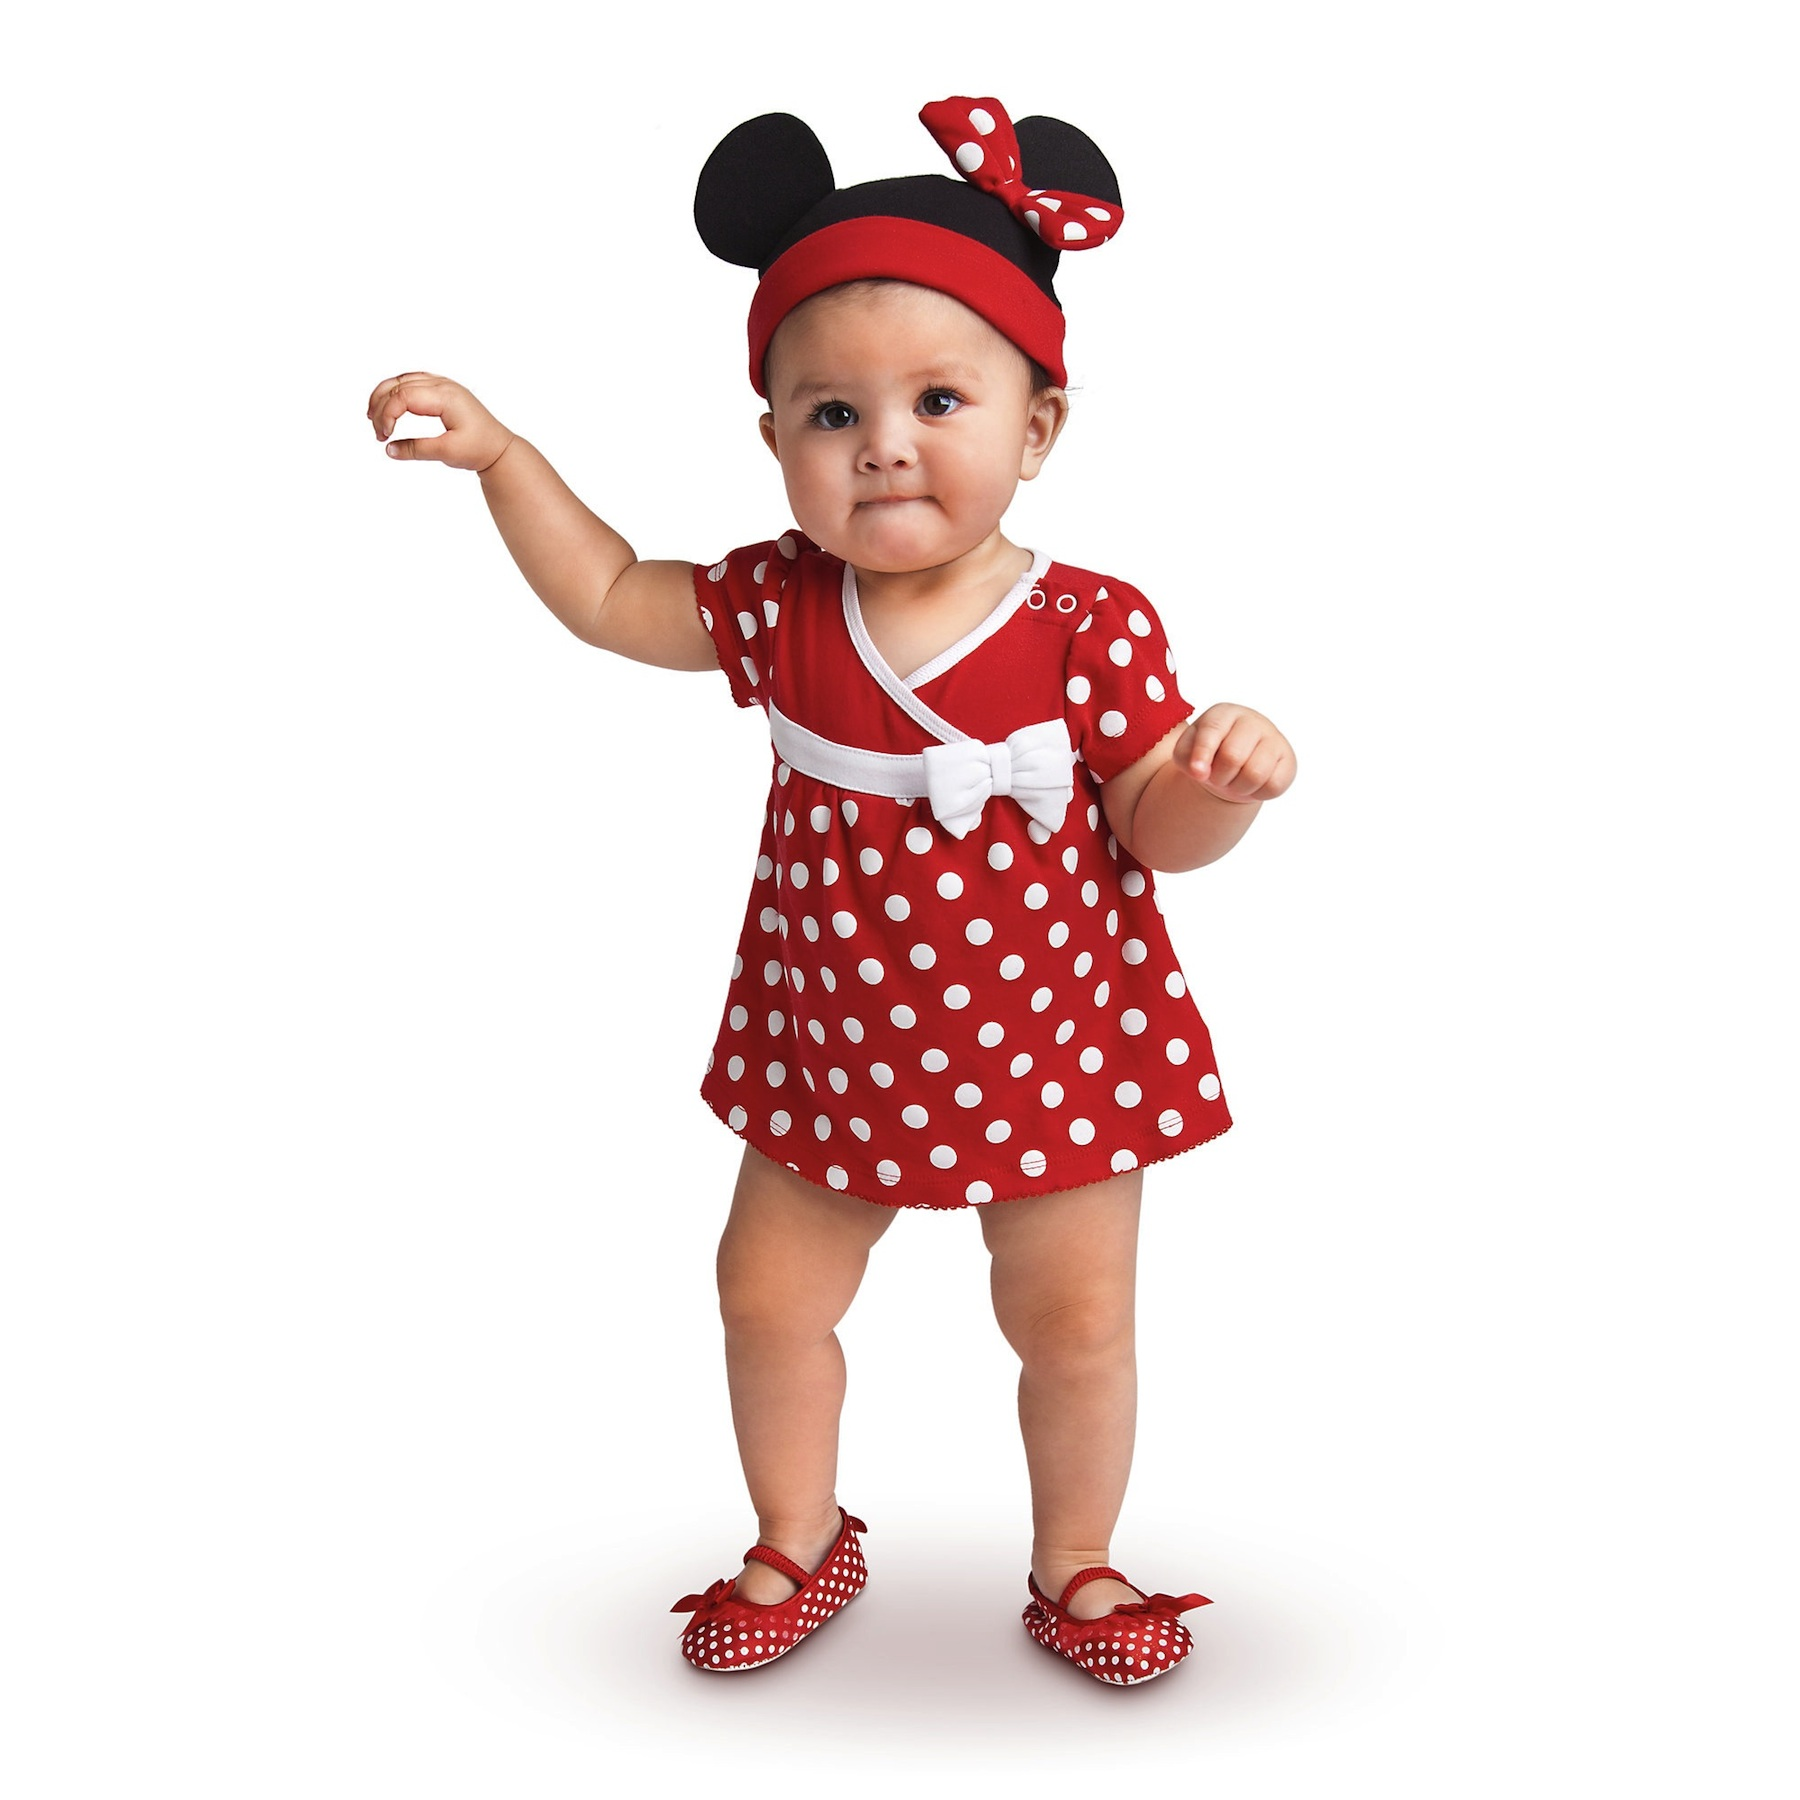 Where to find Minnie Mouse Dress - 24 Dressi